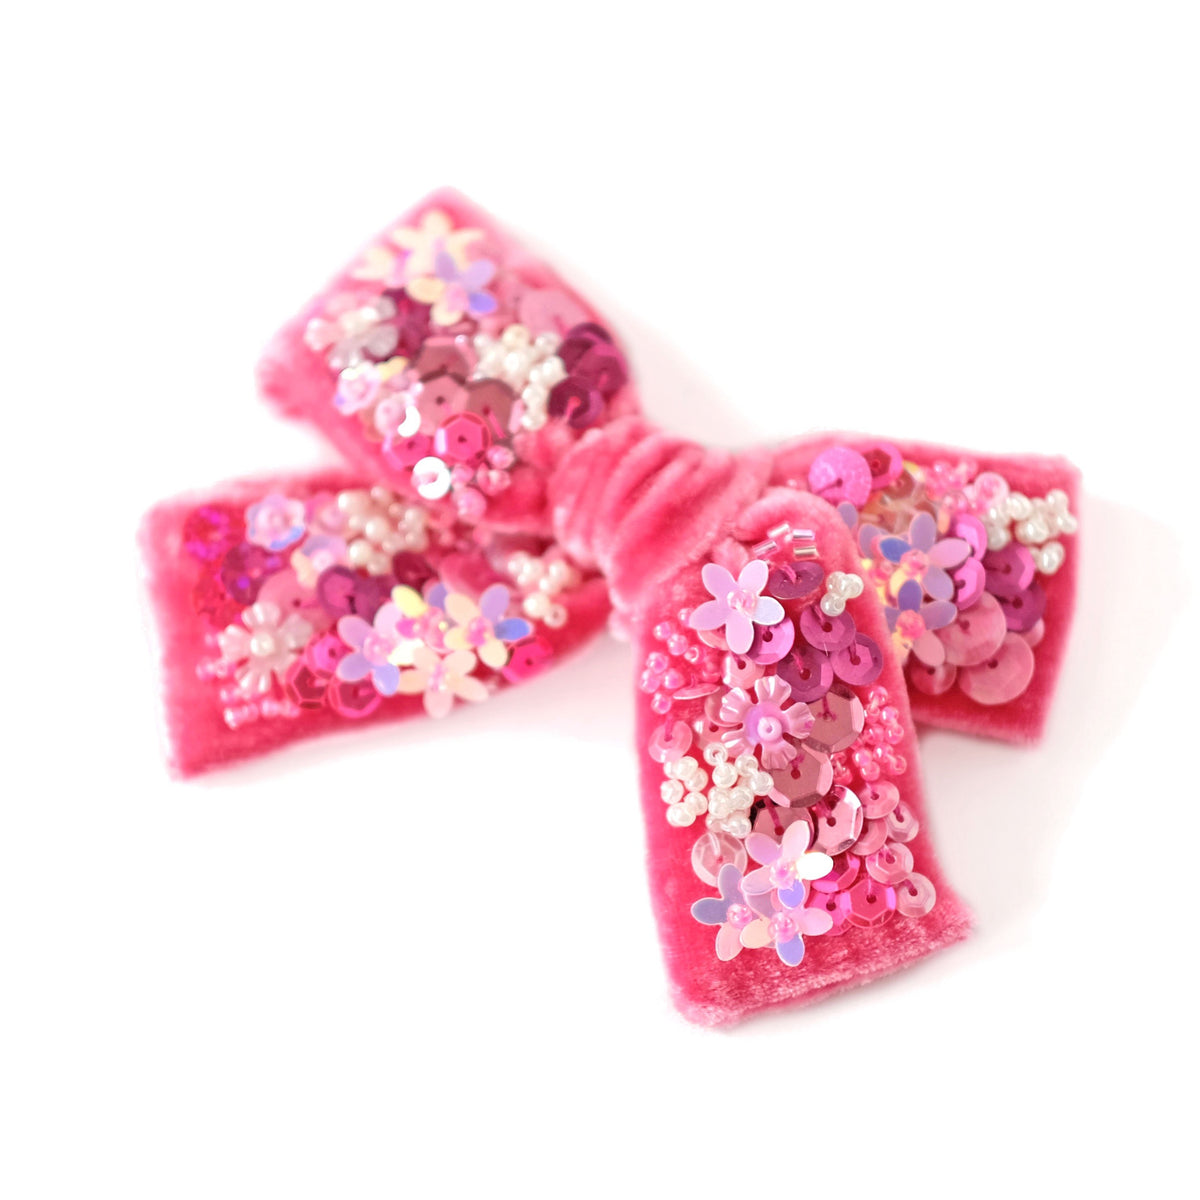 Pink velvet hair bow with sequins.